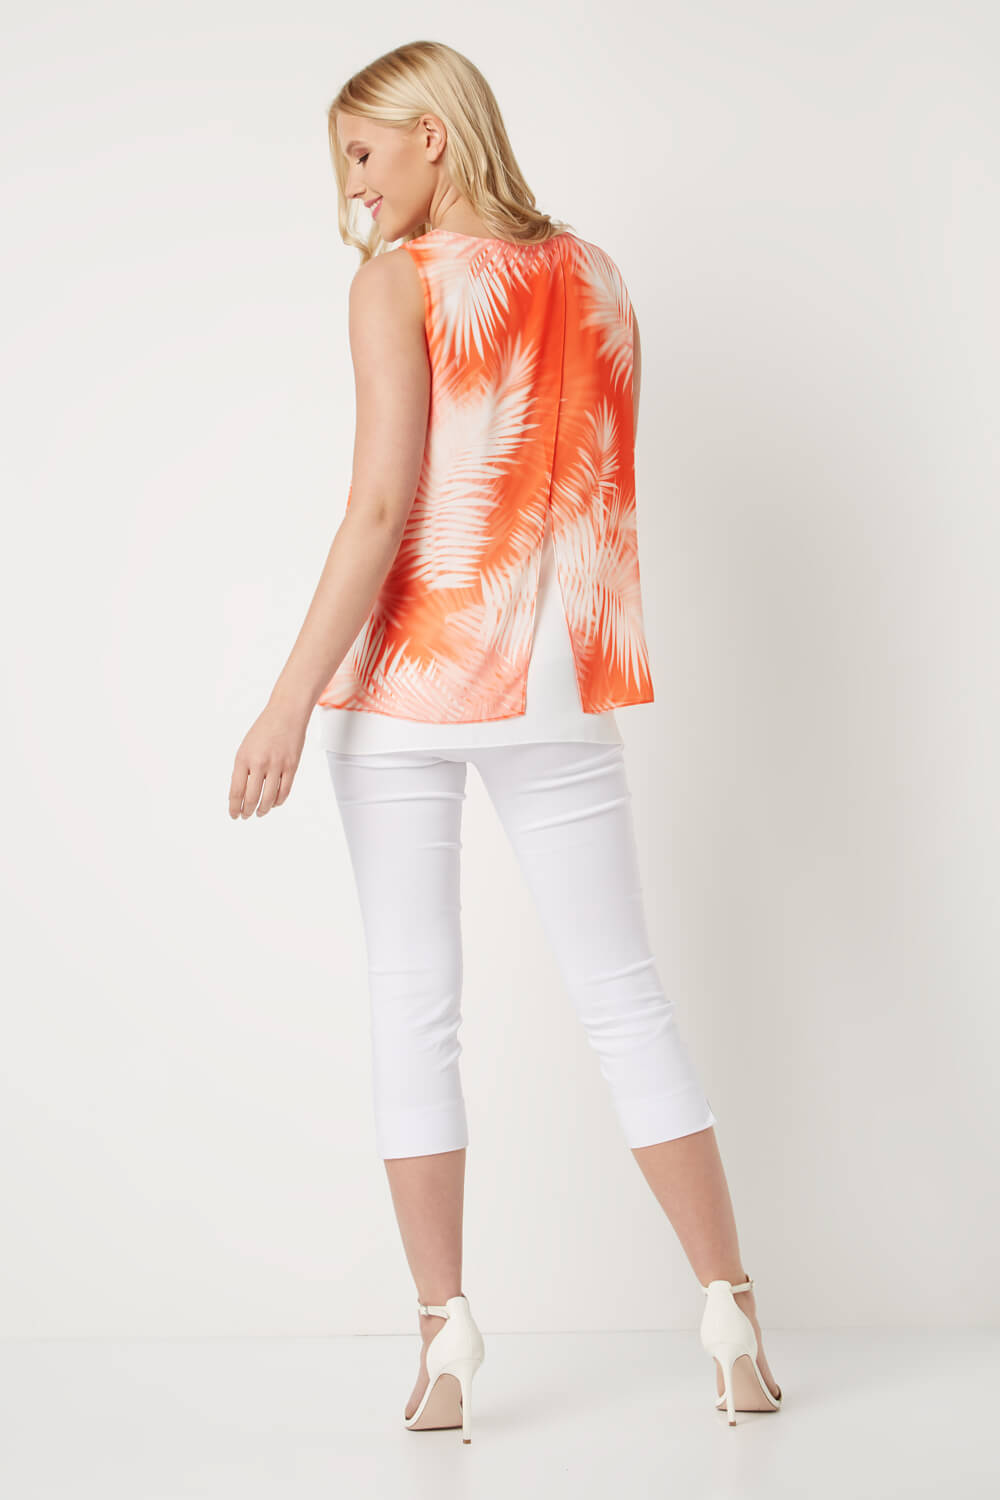 Roman-Originals-Women-039-s-Orange-Tropical-Leaf-Print-Blouse-Sizes-10-20